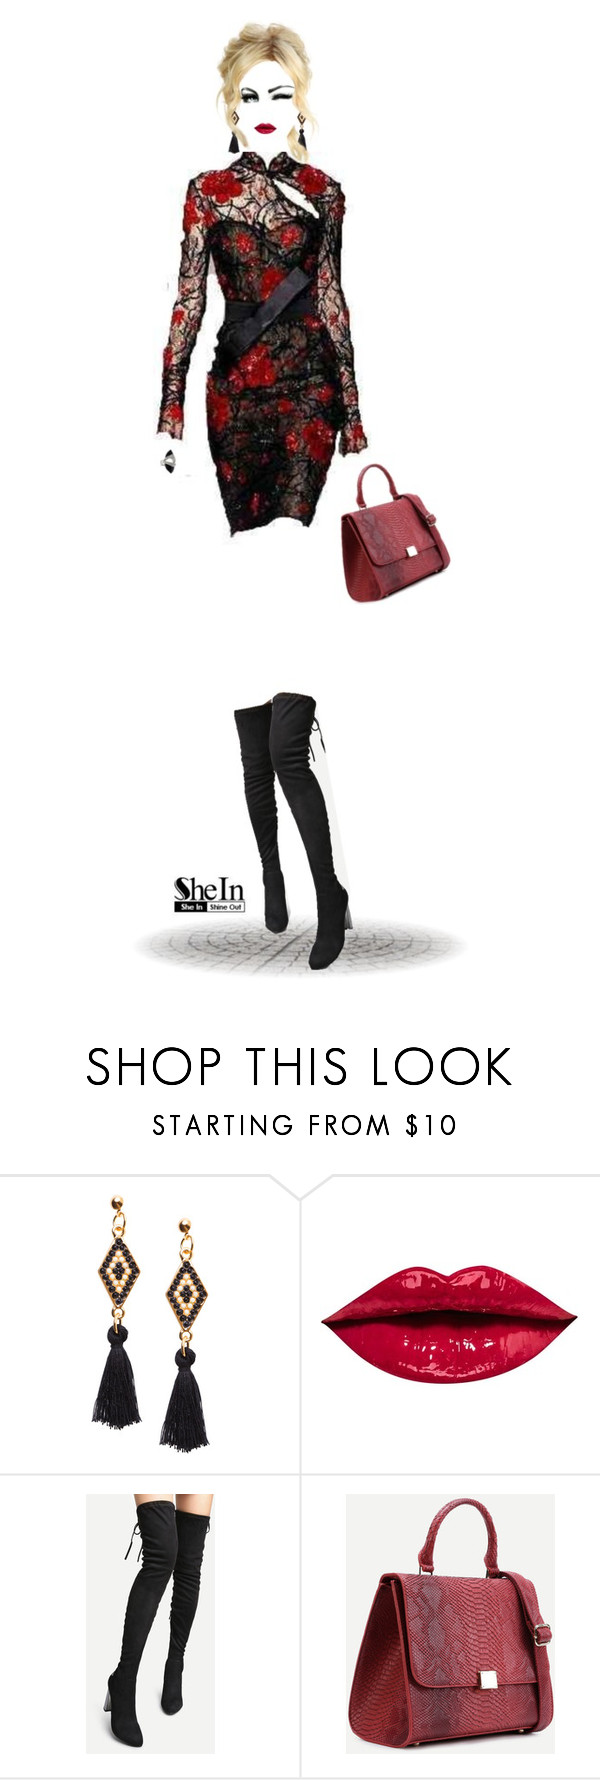 """""""She's a lady!"""" by m-zineta on Polyvore featuring Zuhair Murad, Anastasia Beverly Hills and Alexis Bittar"""